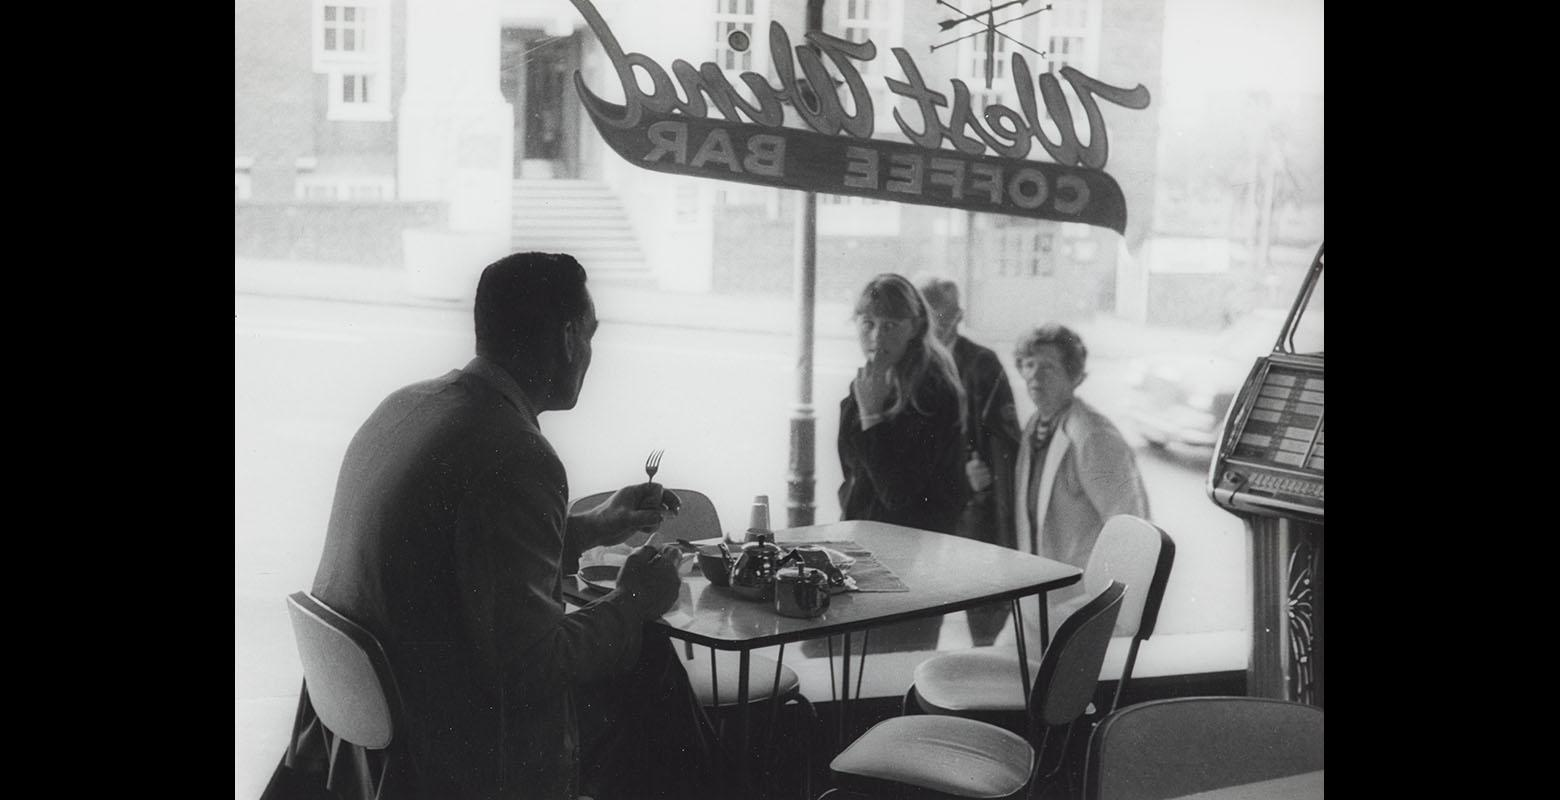 Man sits at a table alone in a cafe, looking out the window, while three people outside look in